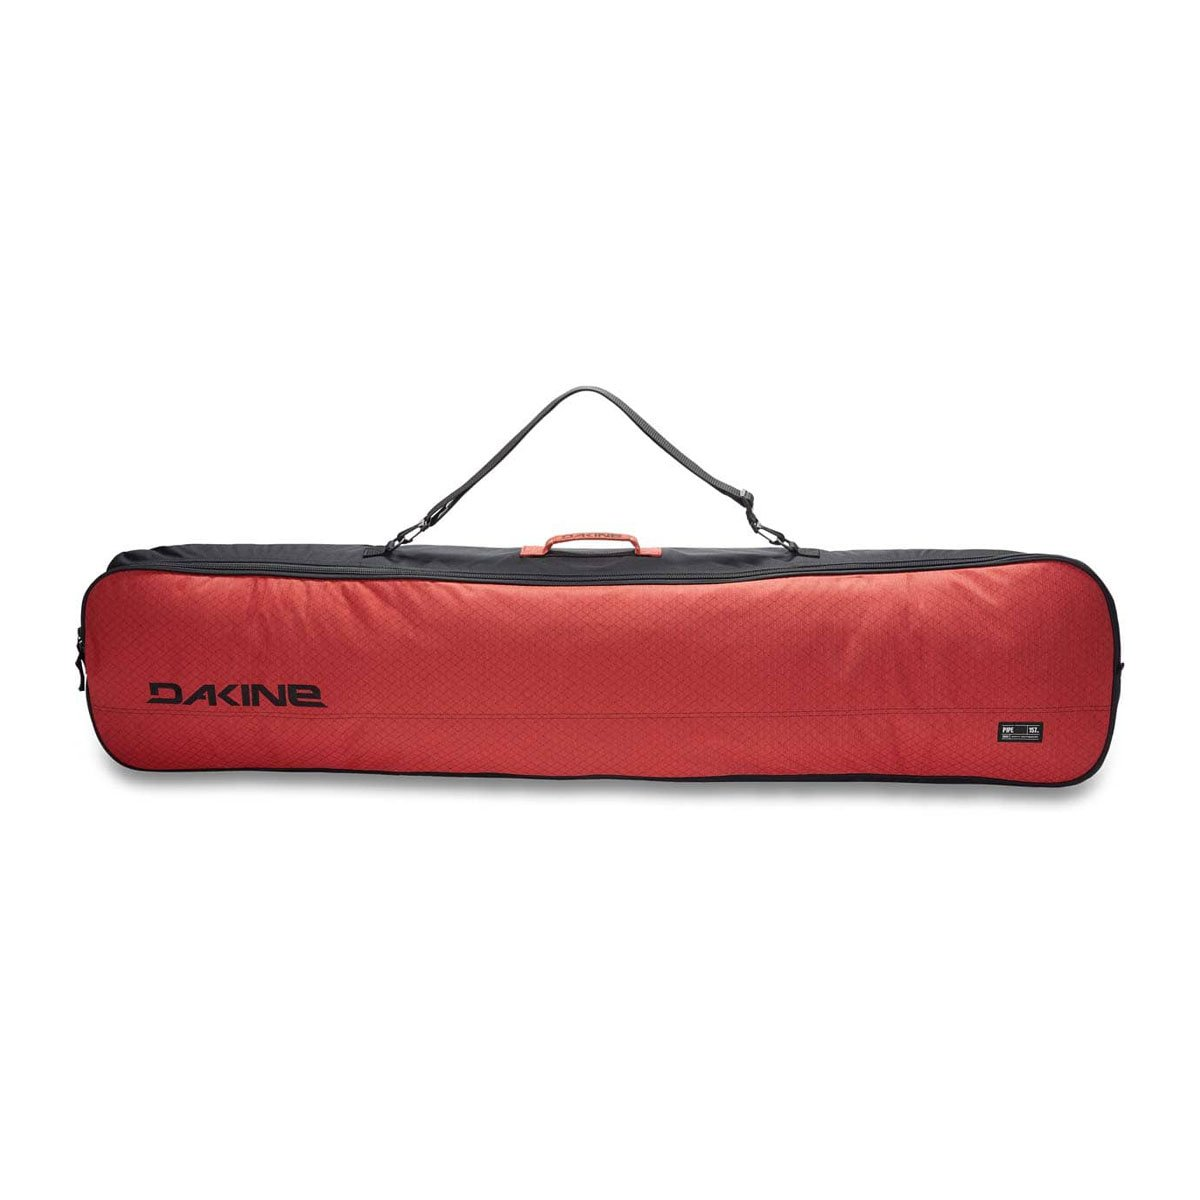 PIPE SNOWBOARD BAG